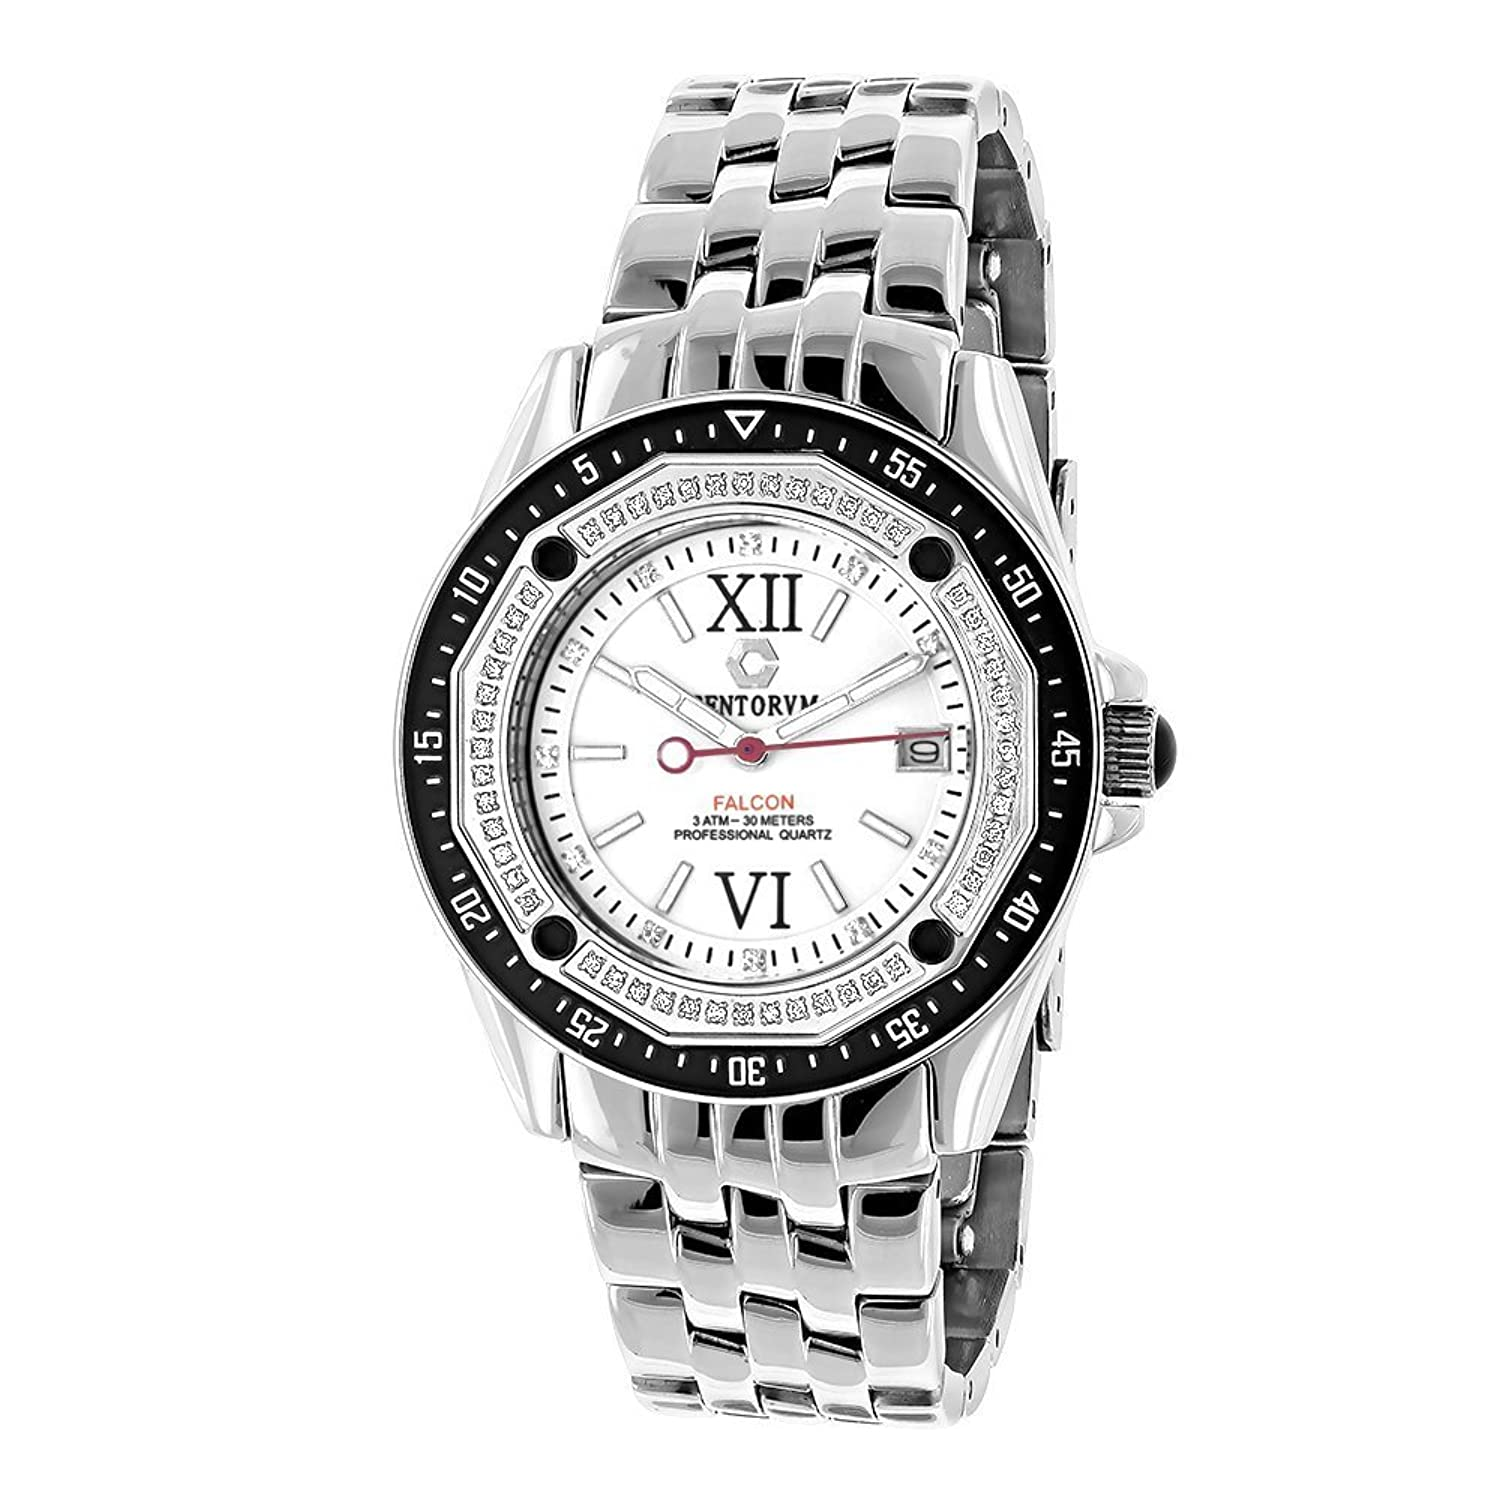 Centorum Falcon Diamond Watch 0.5ct Midsize Model